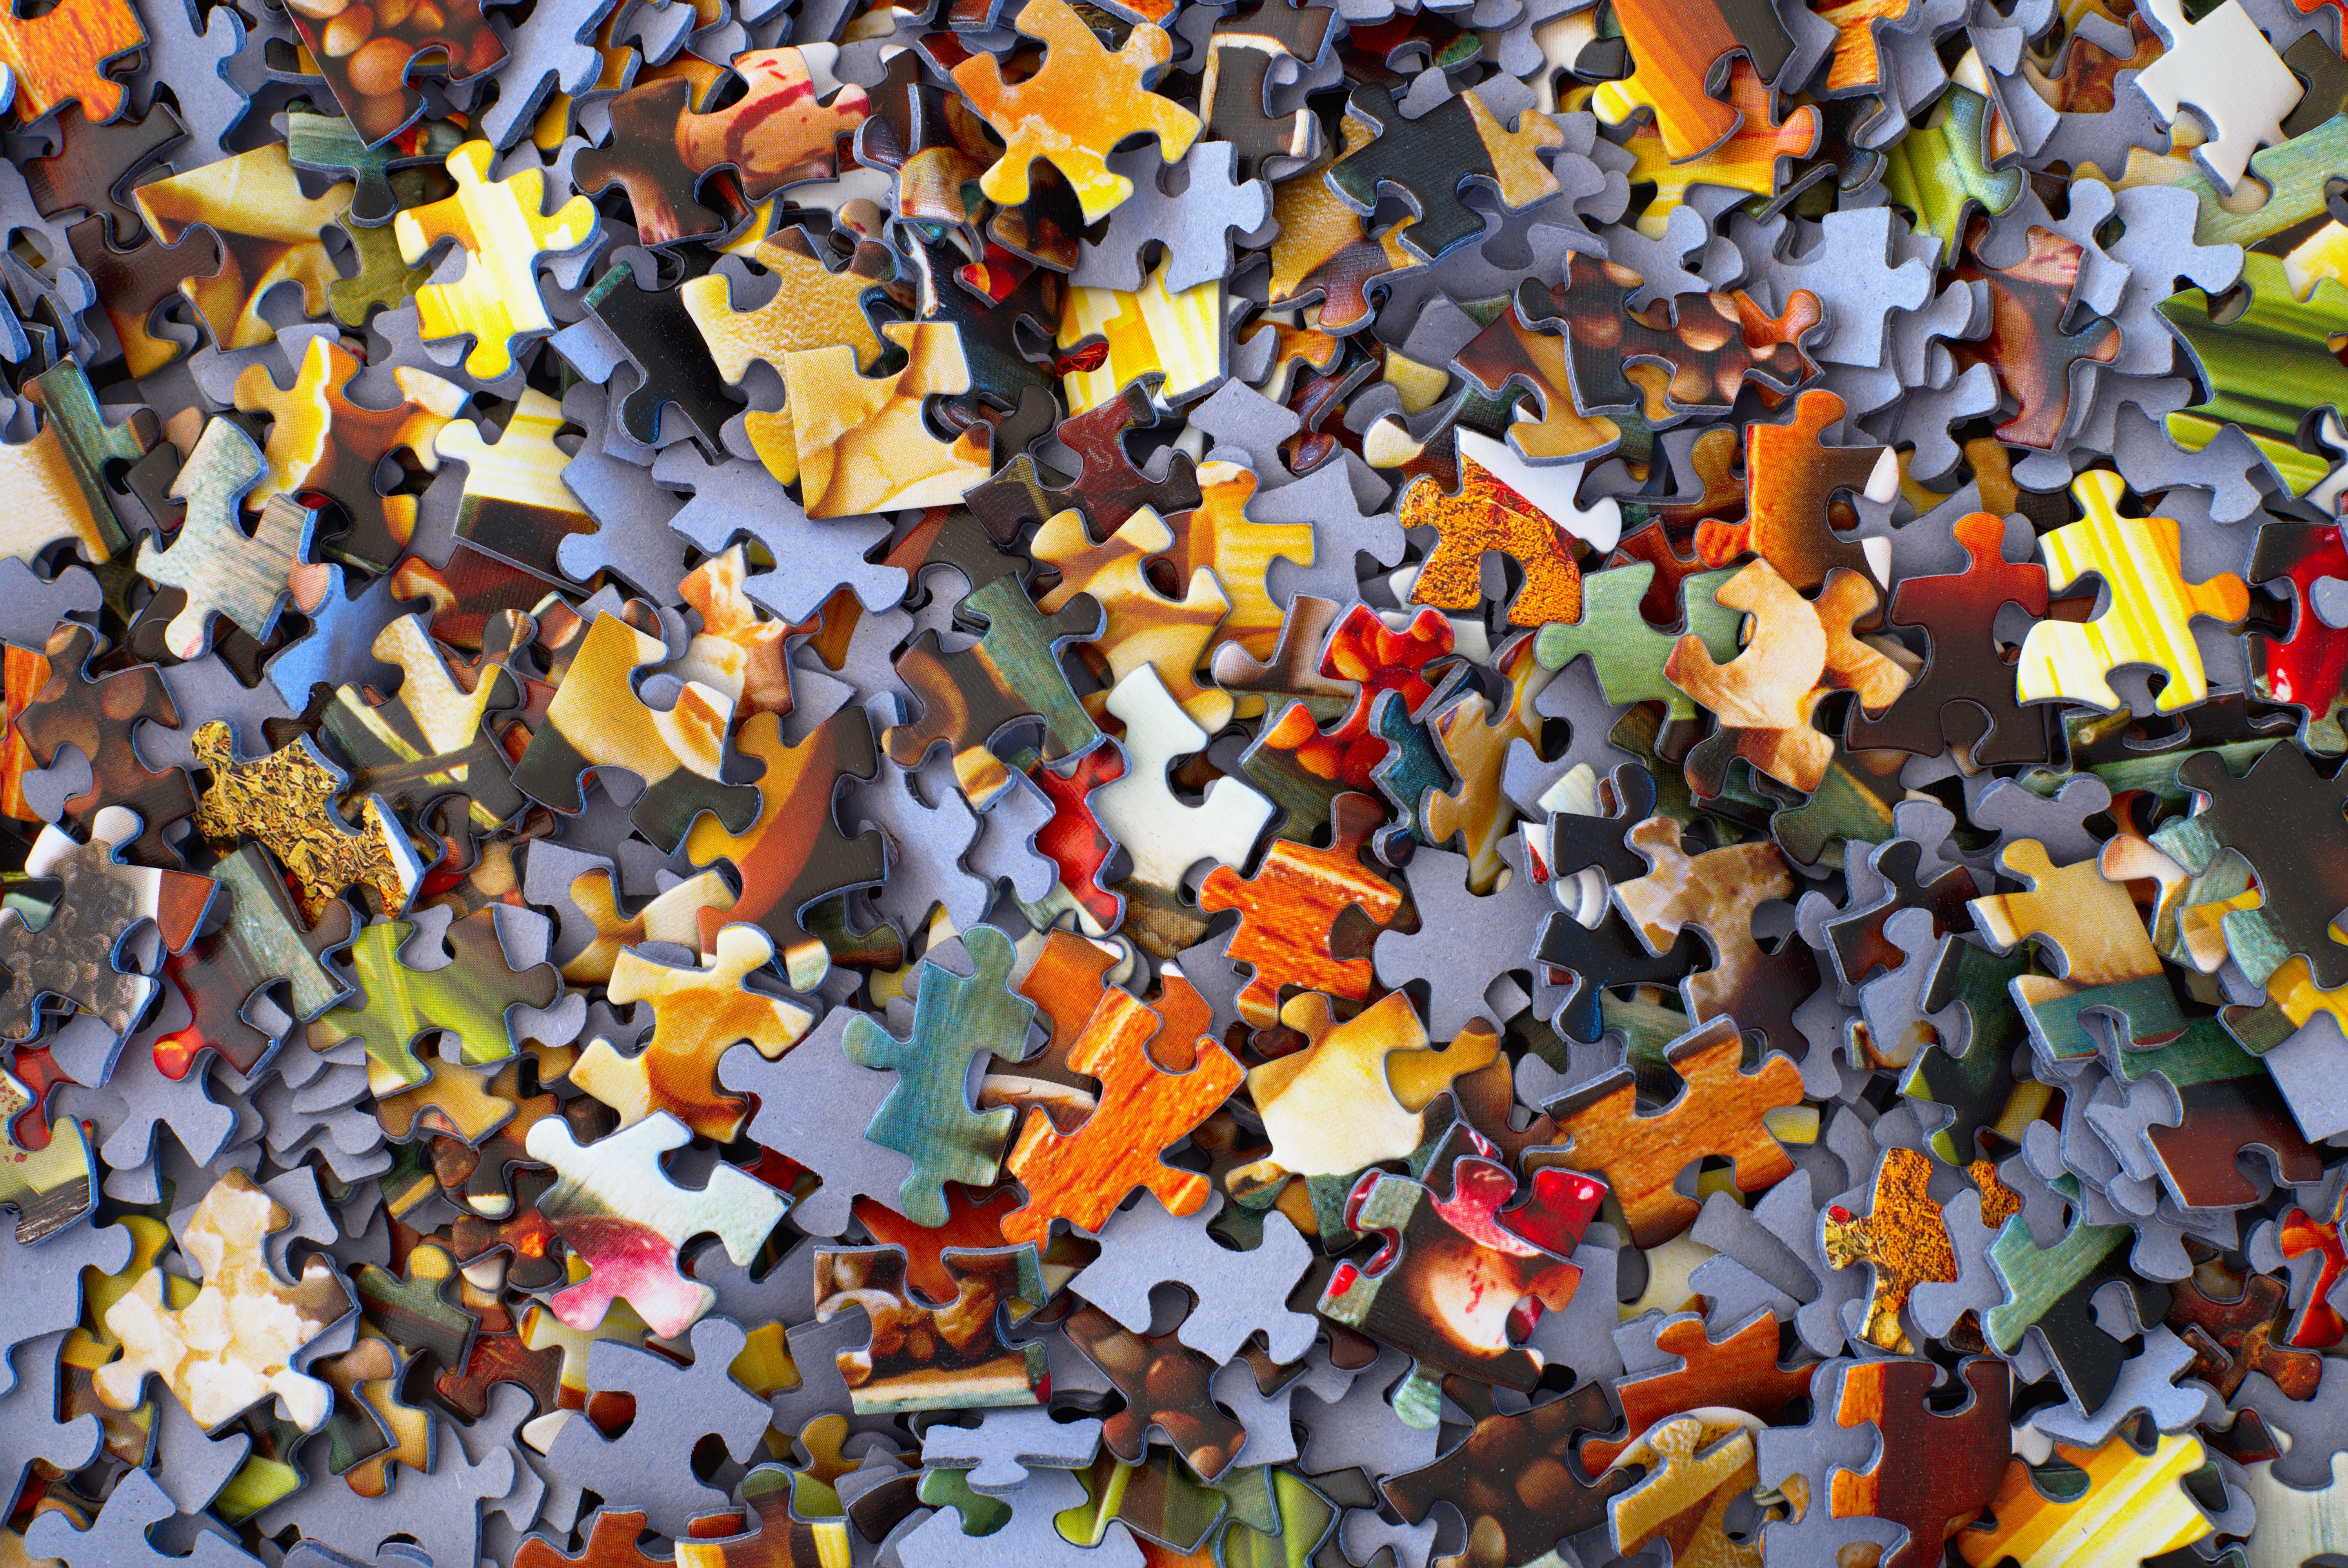 Image of a pile of multicolored puzzle pieces